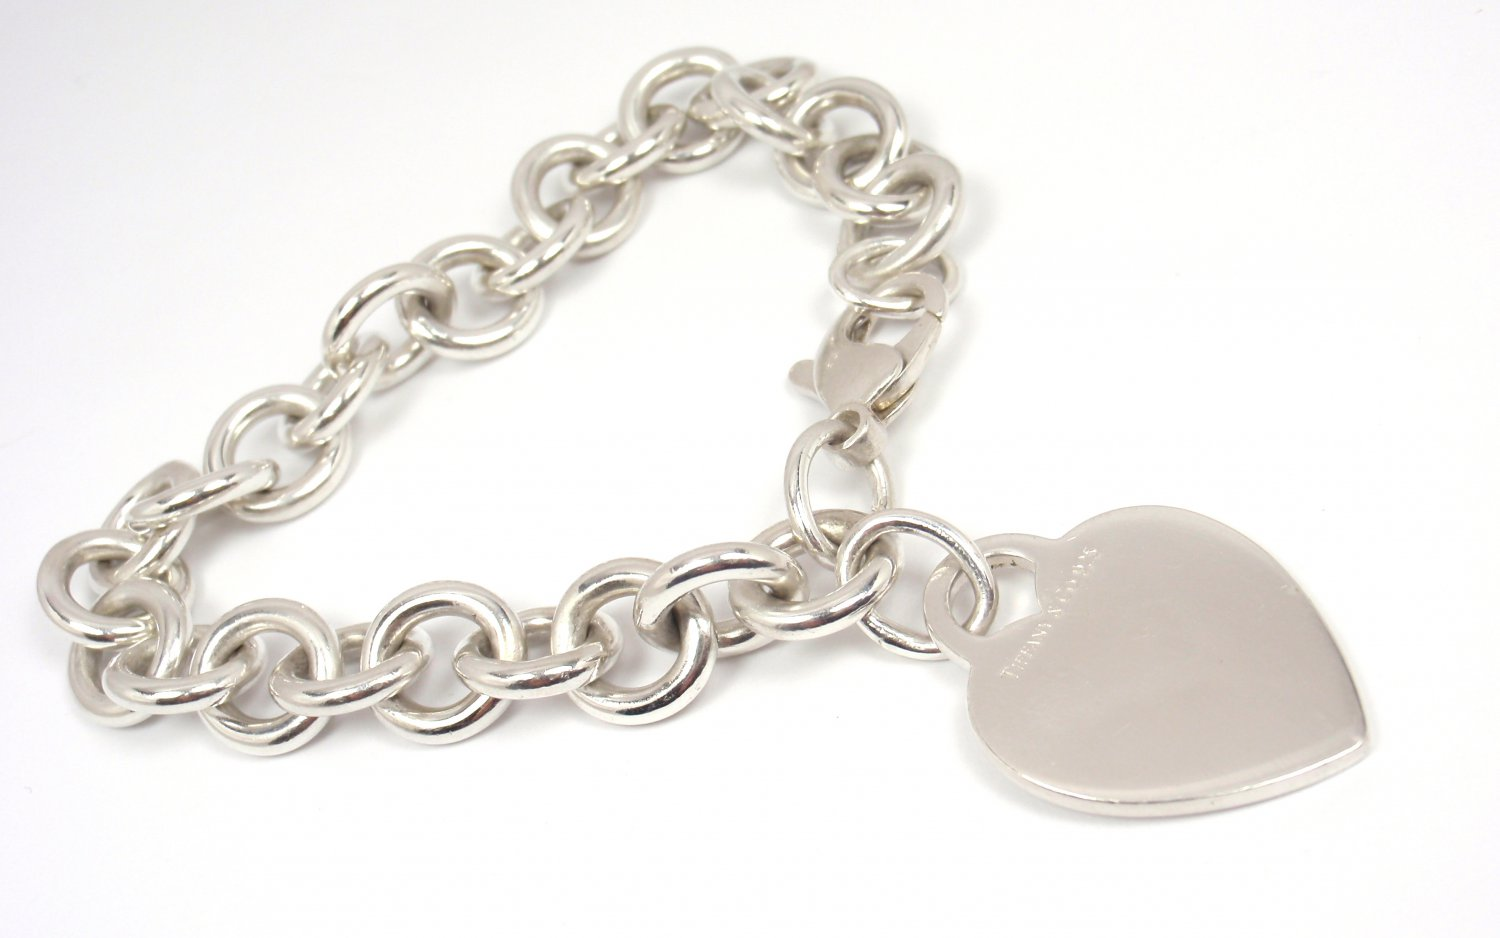 """Authentic Tiffany & Co Sterling Silver Heart Tag Charm Bracelet 7.5"""""""